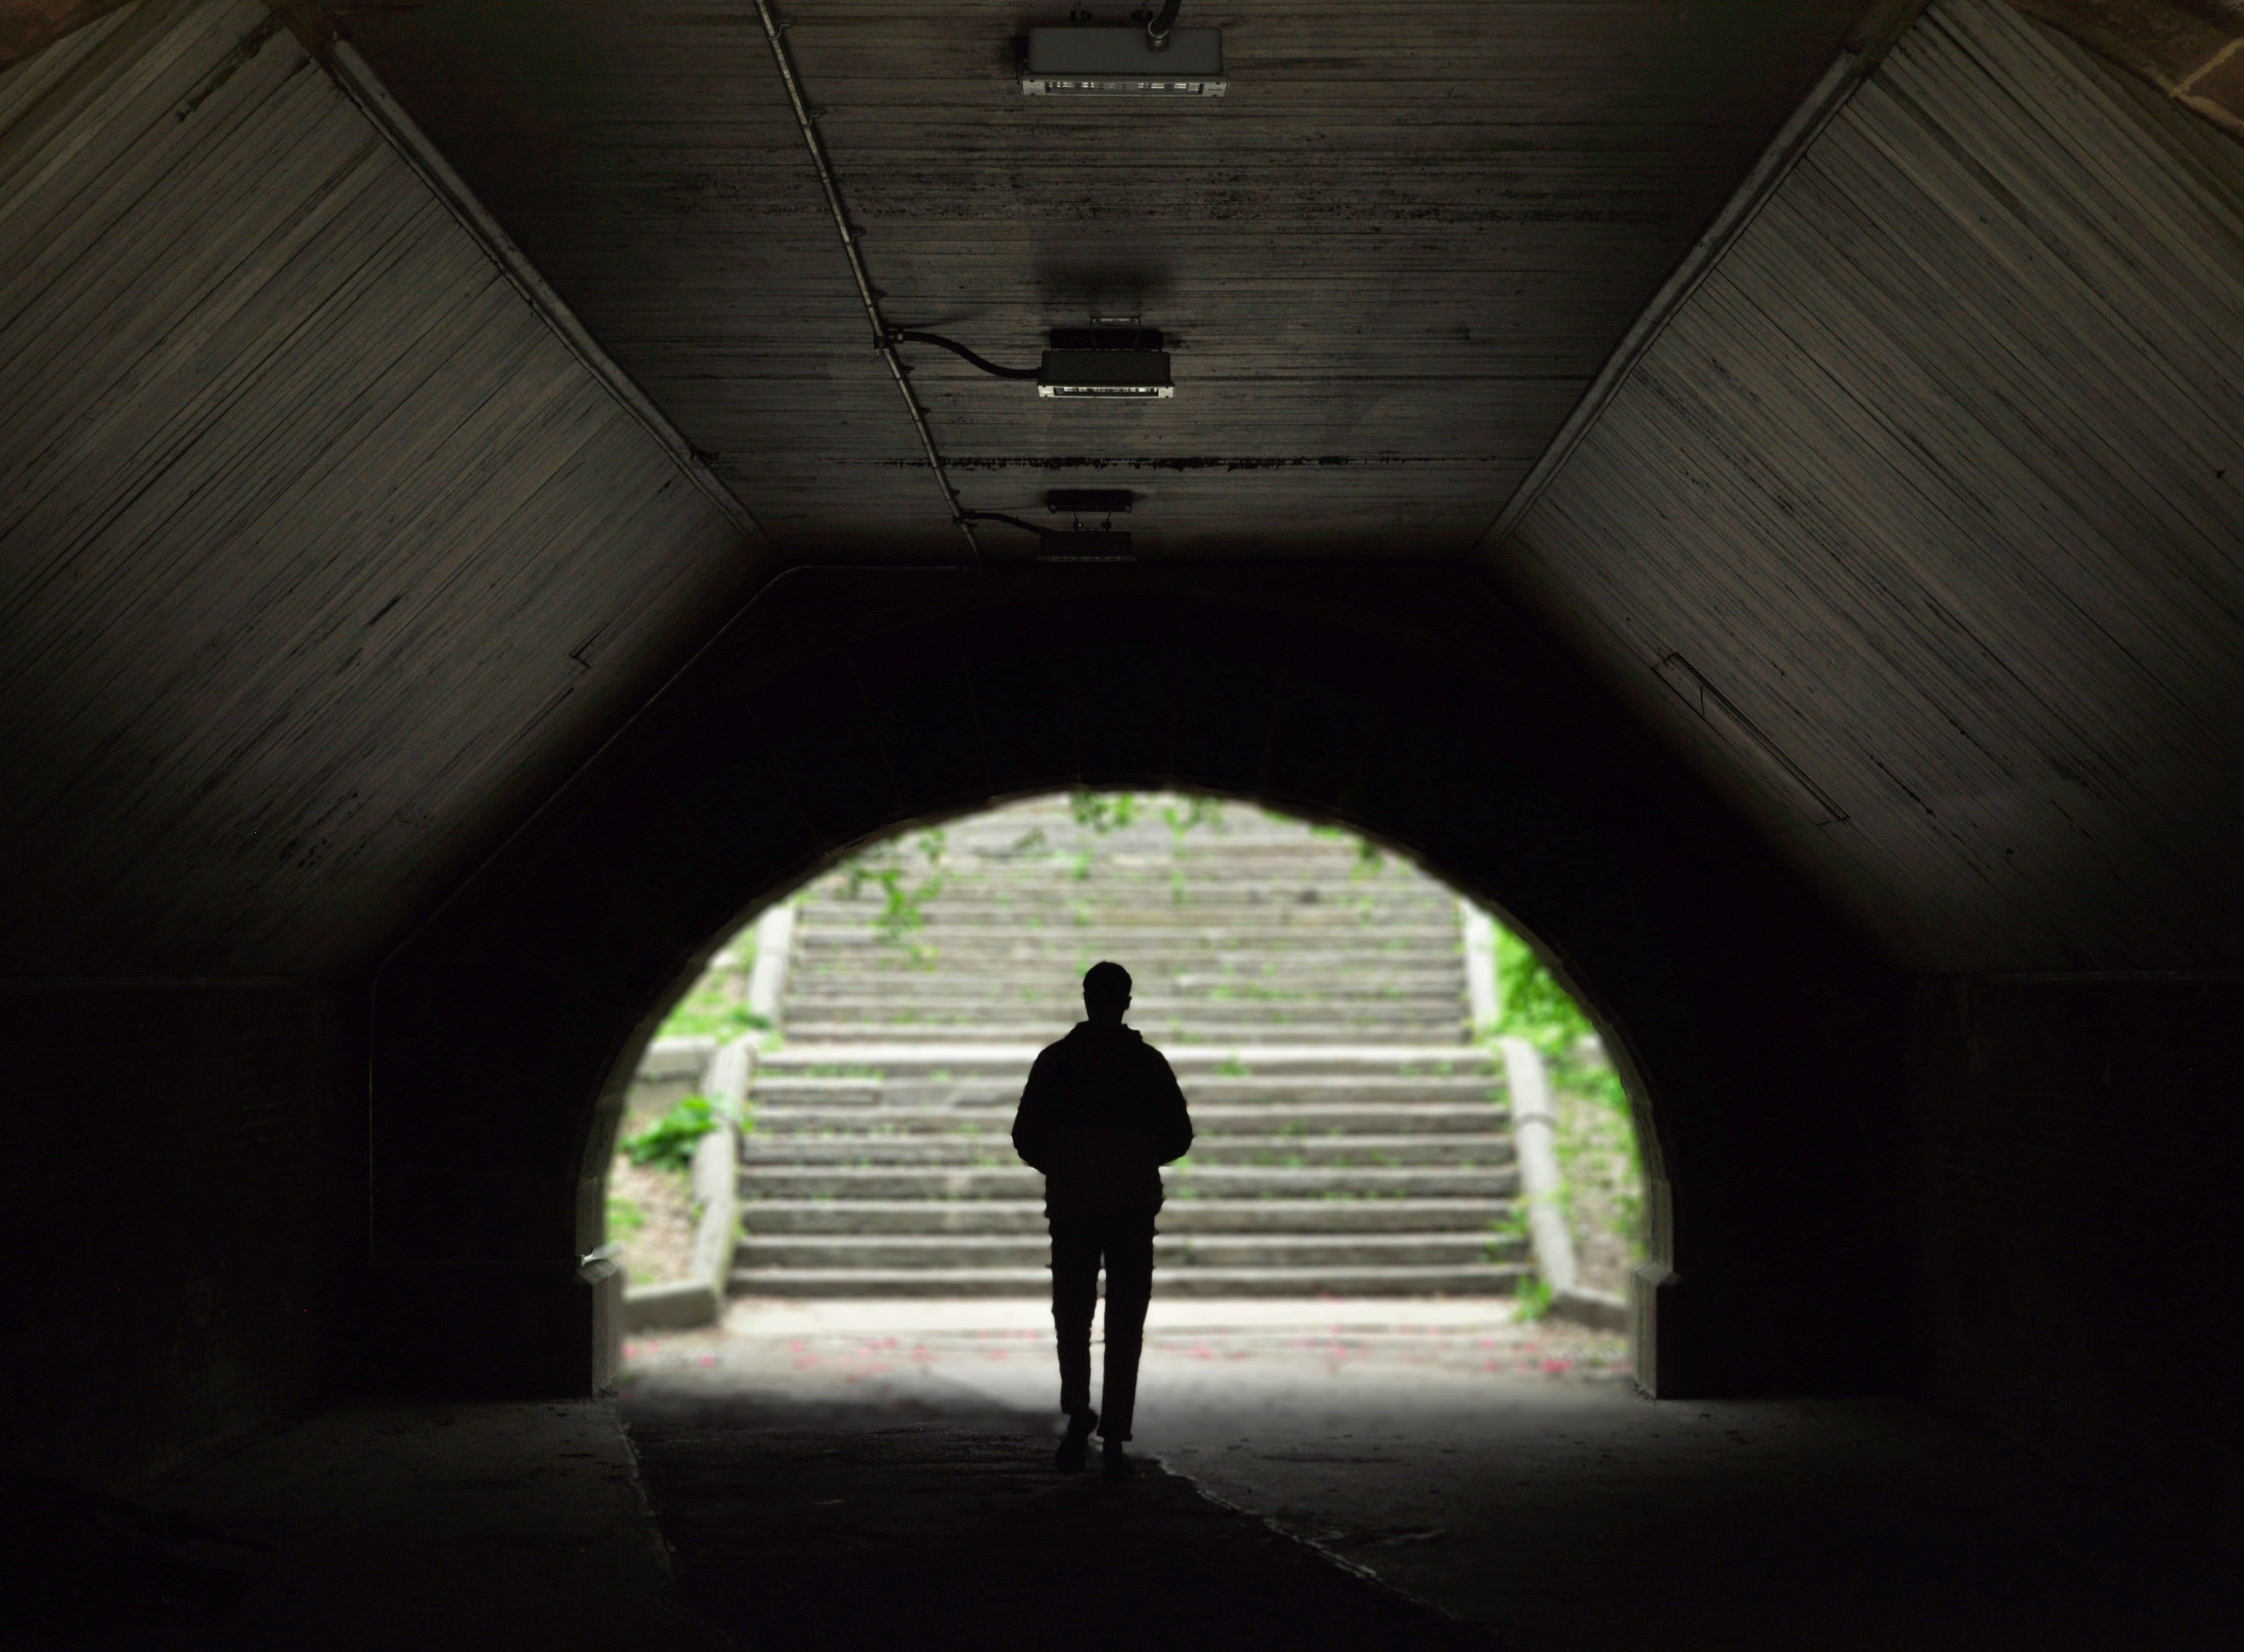 A silhouetted person walking to the end of a tunnel where stone steps lead upward.